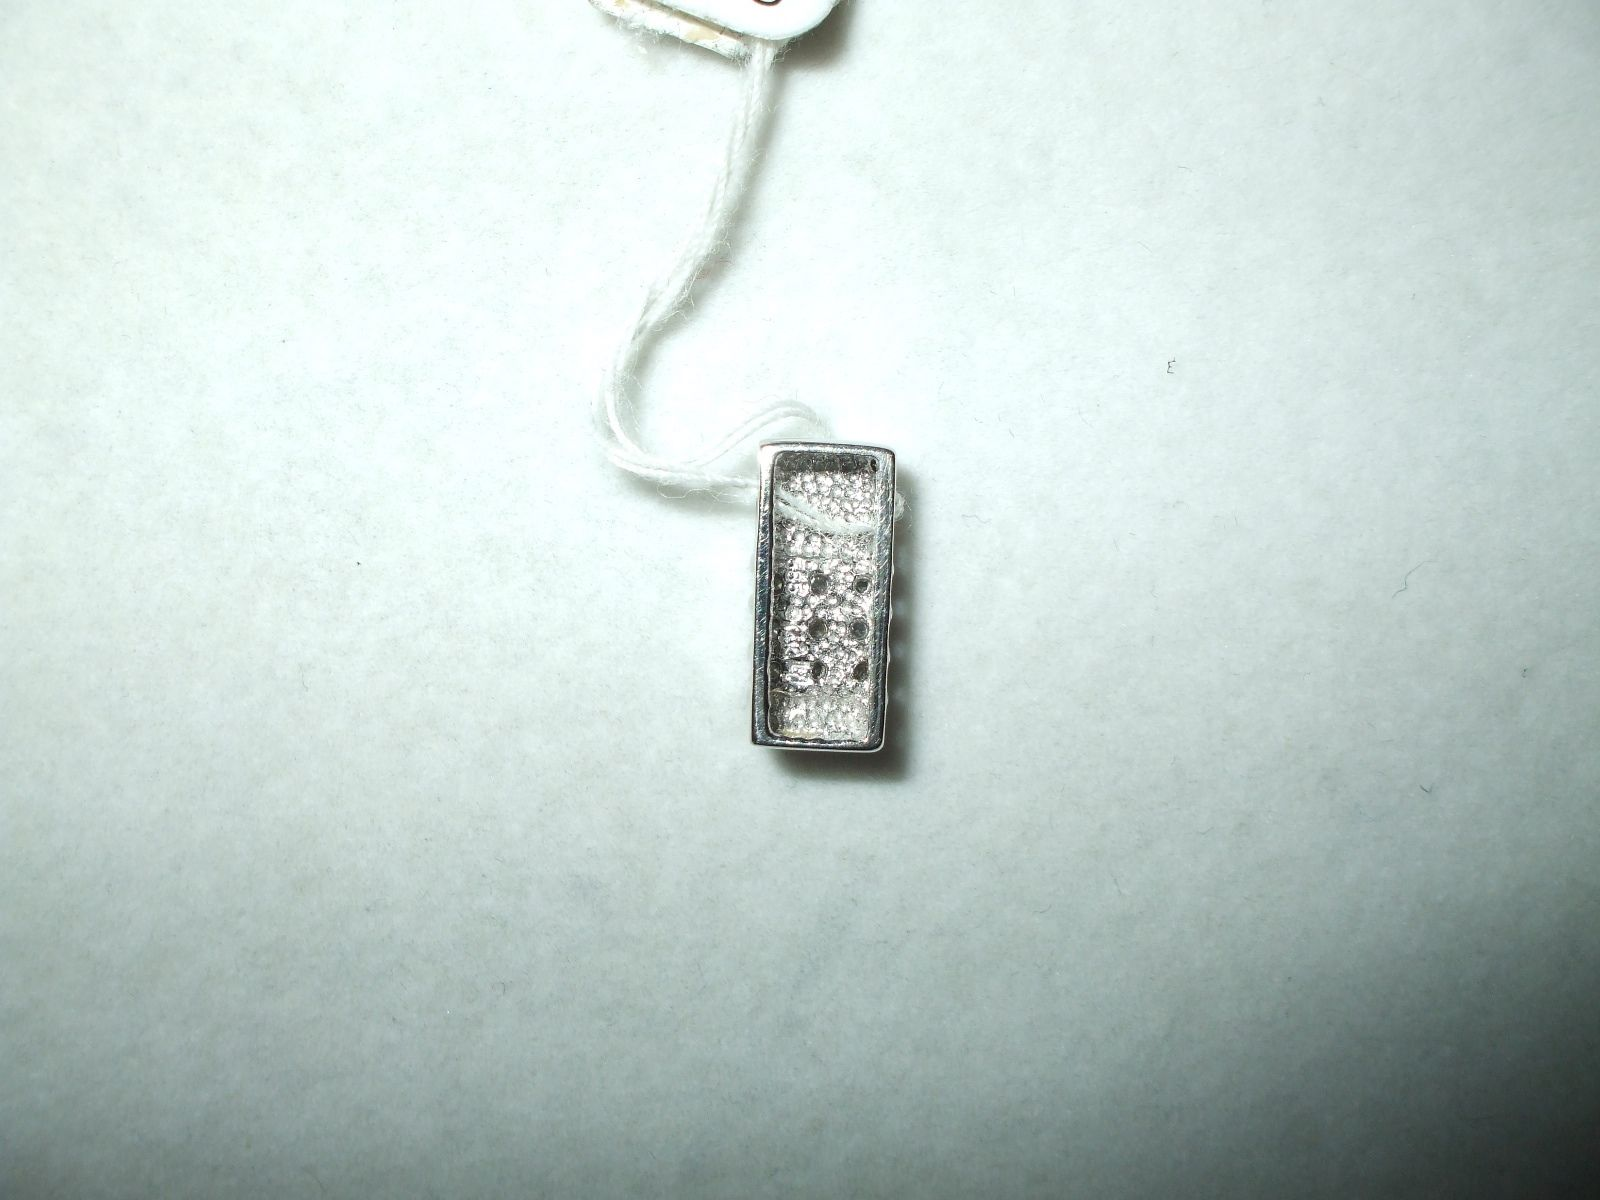 Genuine .24 ct Diamond Pendant 14K white gold New $480